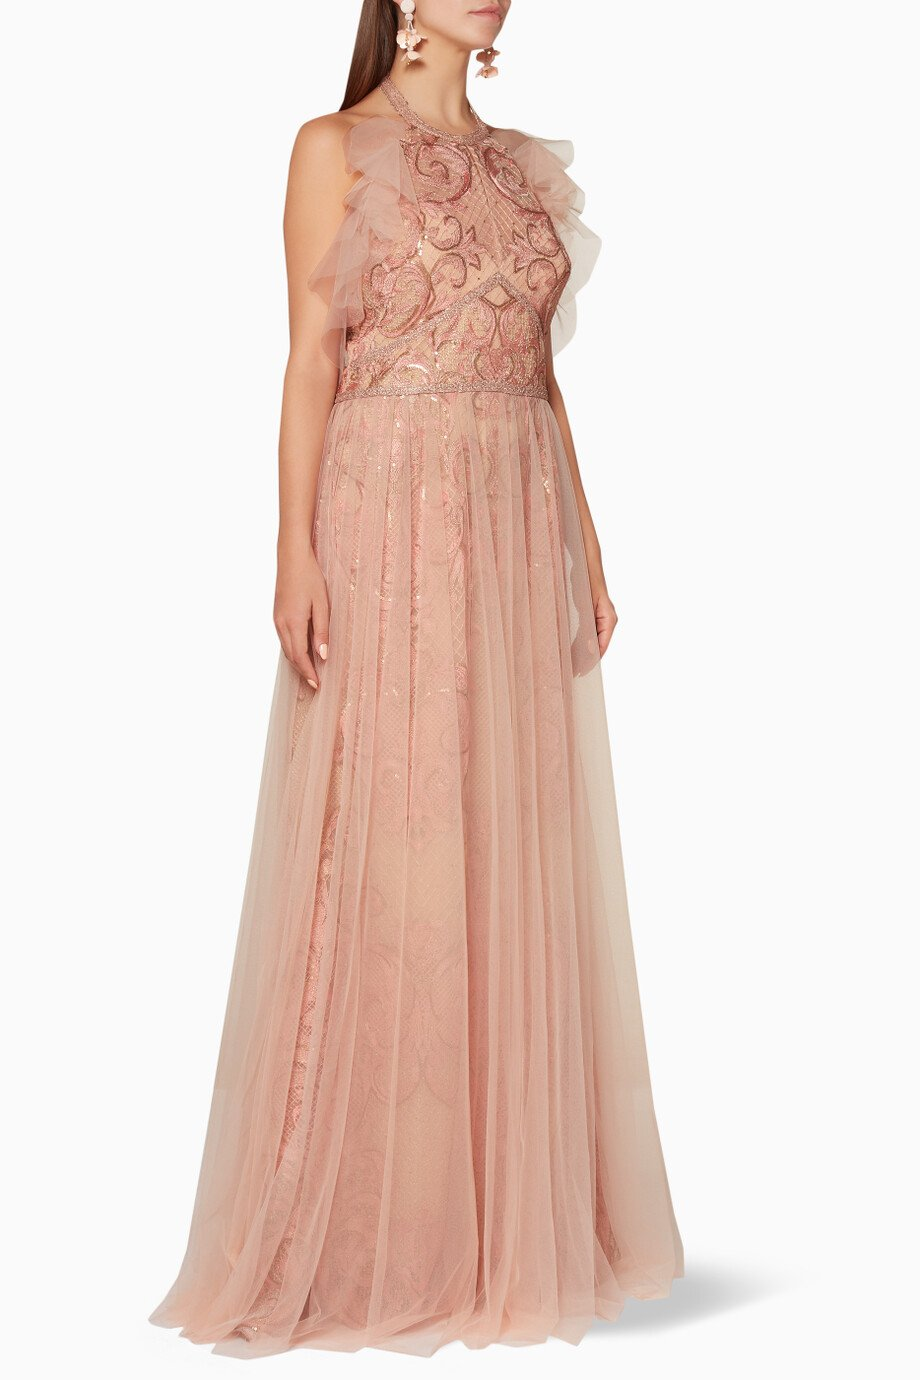 753f0387 Shop Marchesa Notte Pink Light-Pink Embroidered Tulle Gown for Women ...